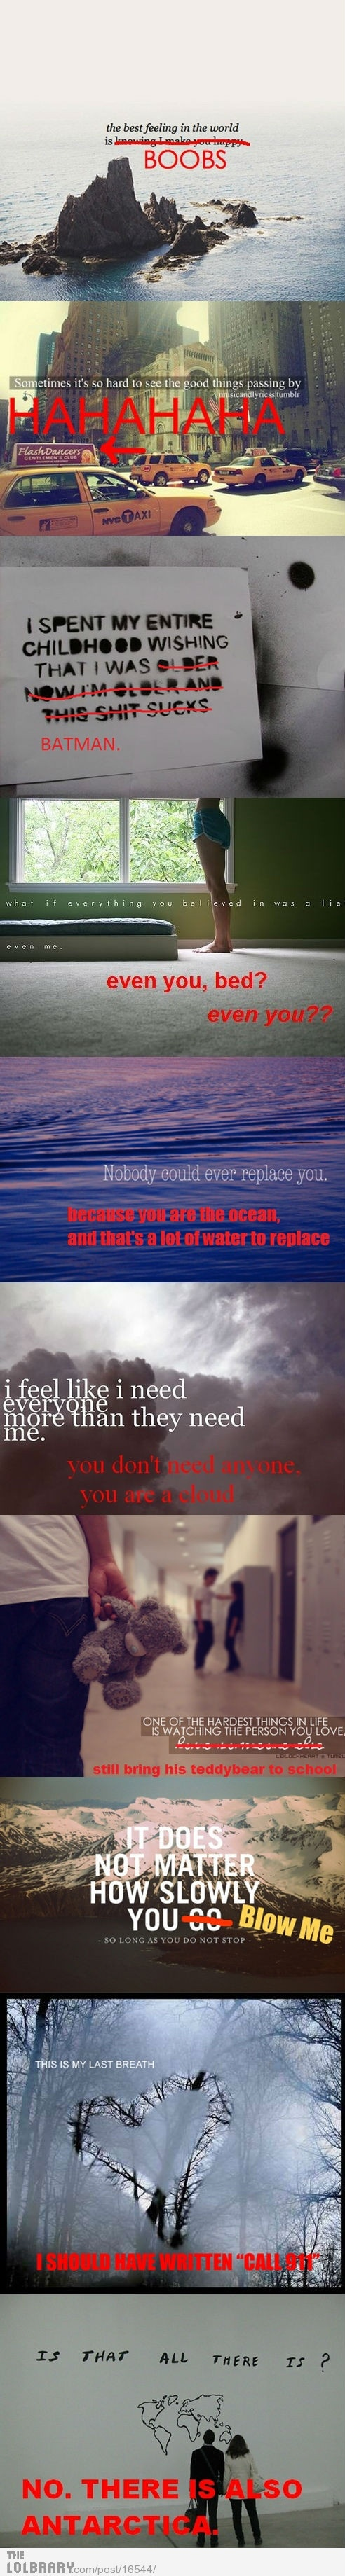 More red-writing humor, over-top of 'emo(tional)' one liners with seemingly random photography. Hahahahaha the last one oh my god